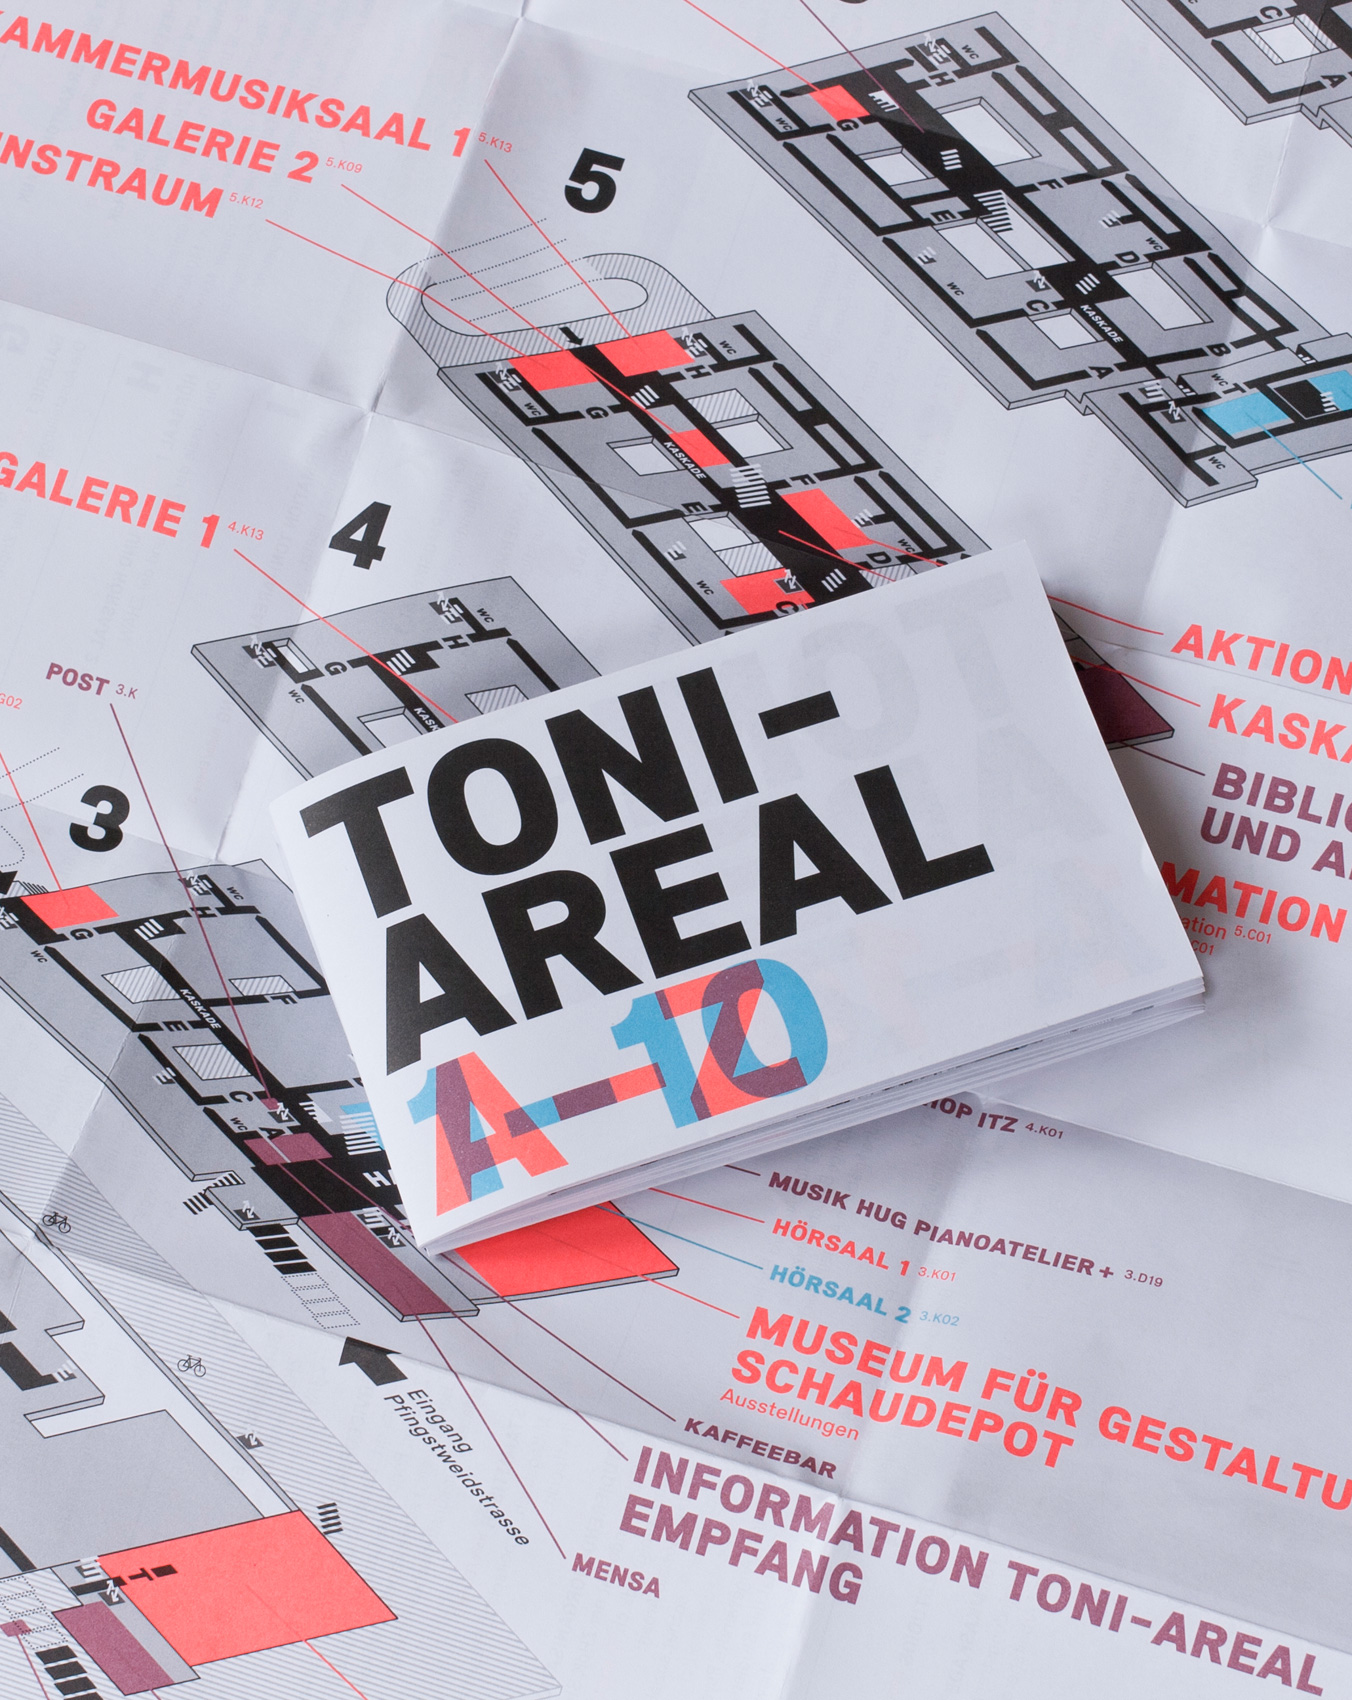 Toni-Areal A–Z